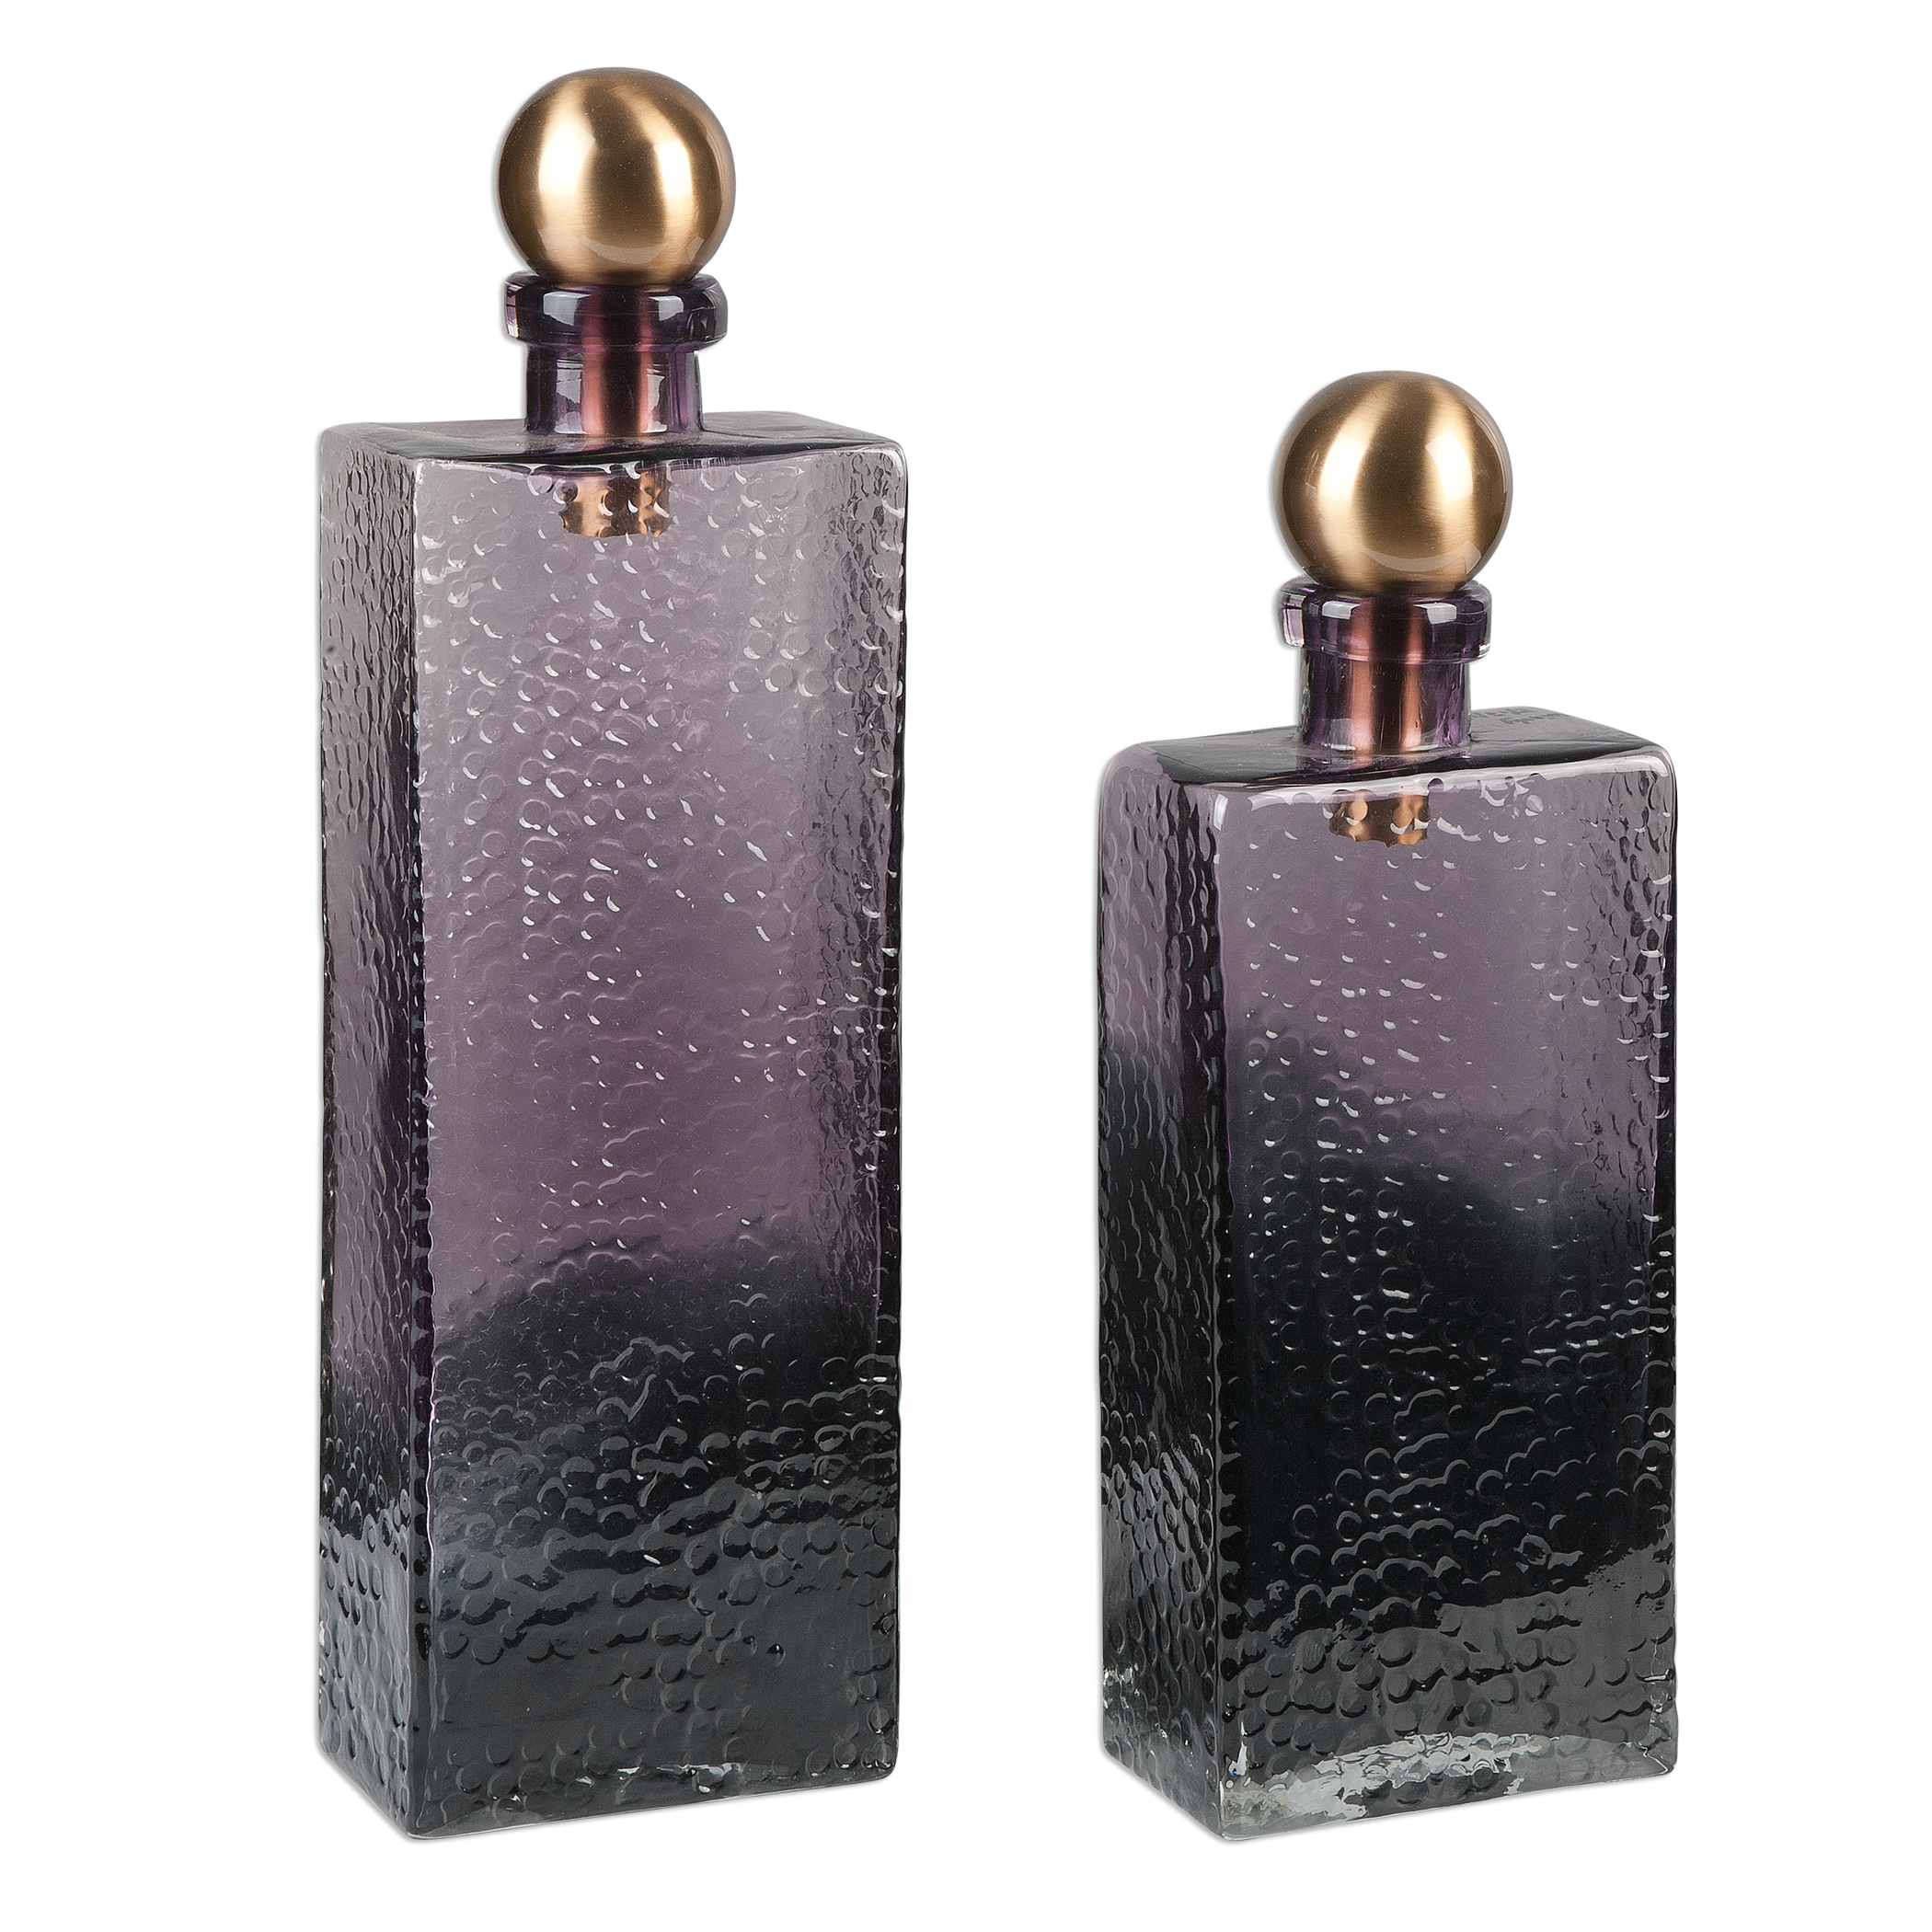 Uttermost Accessories Benedetto Glass Bottles, S/2 - Item Number: 20075